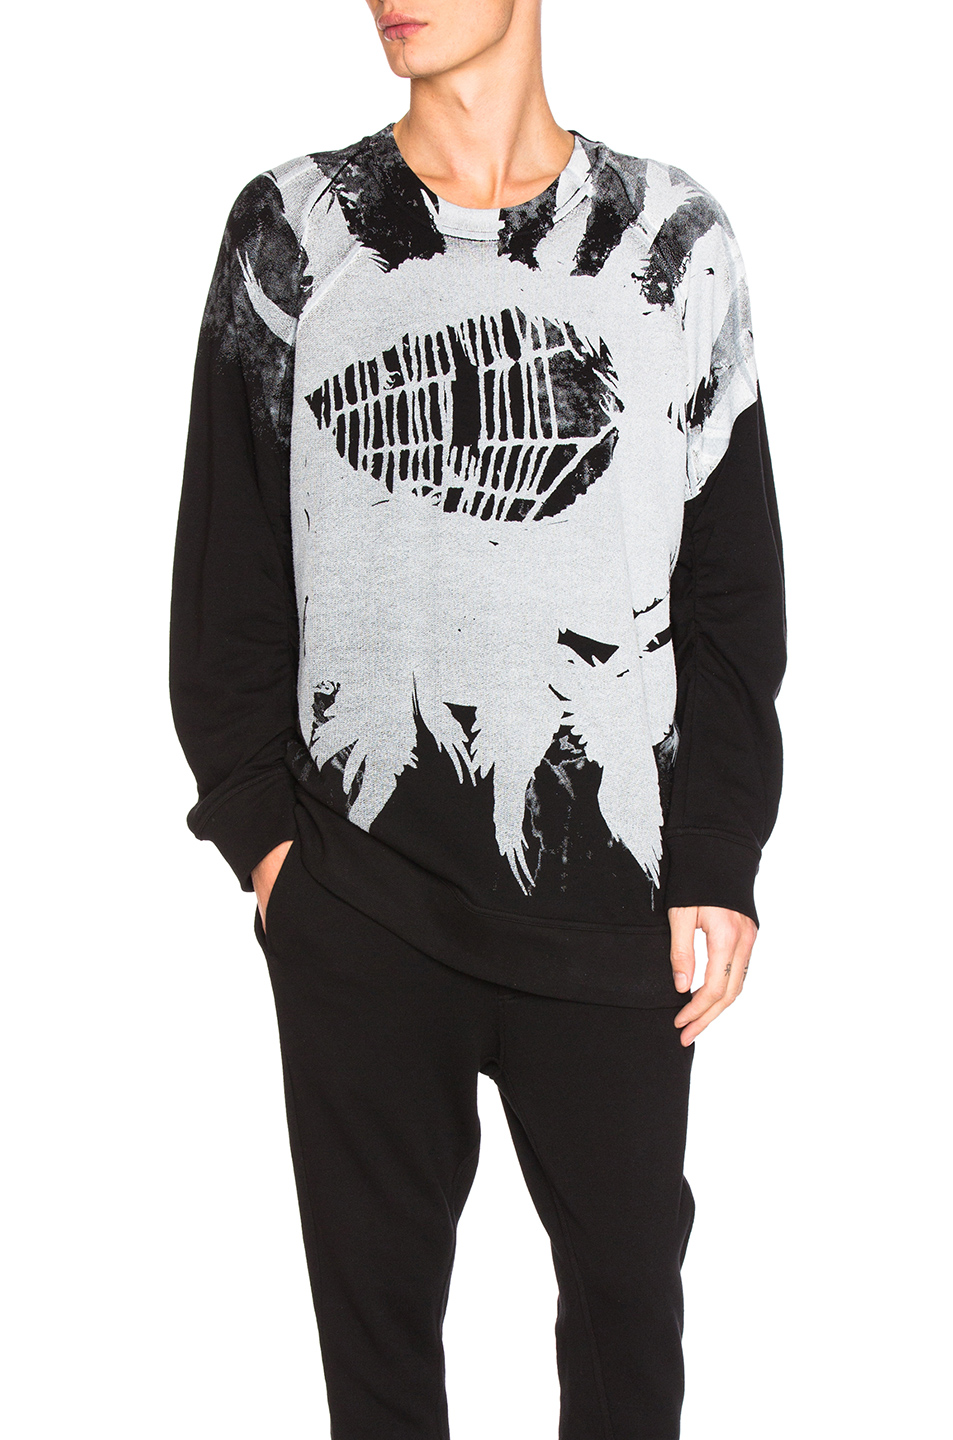 Ann Demeulemeester Printed Sweatshirt in Black,Gray,Abstract